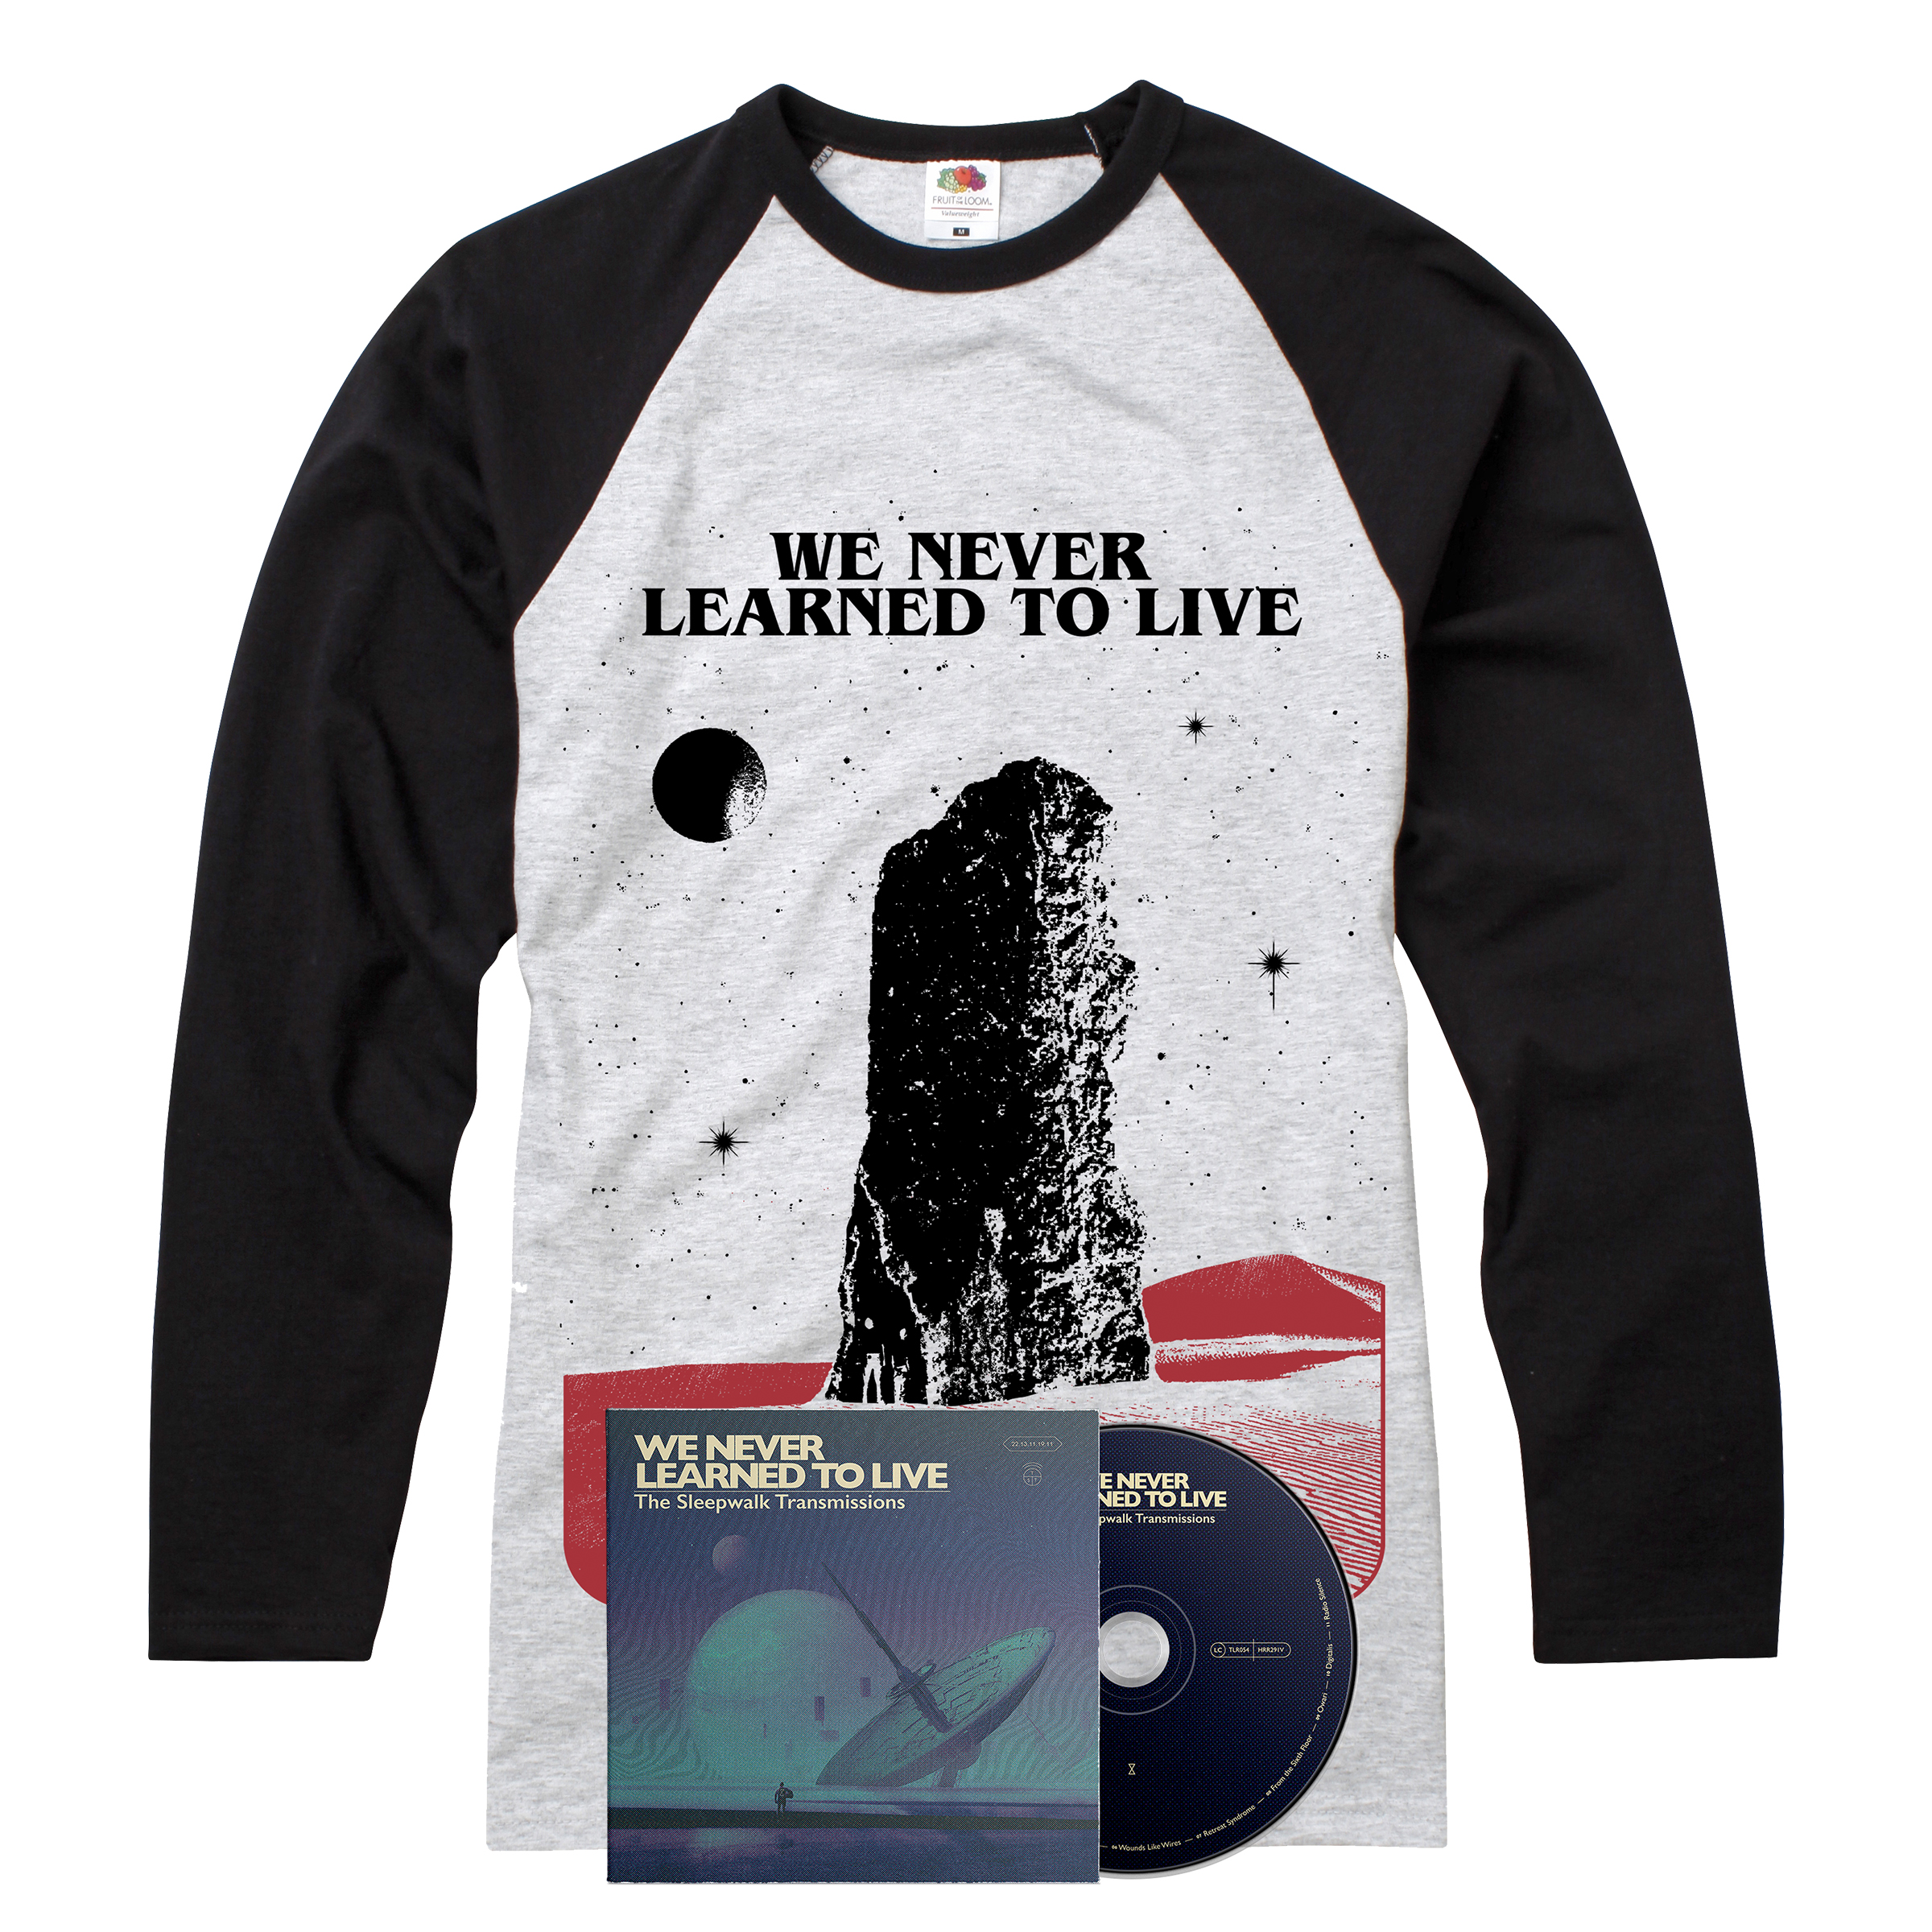 We Never Learned To Live - The Sleepwalk Transmissions CD + long sleeve